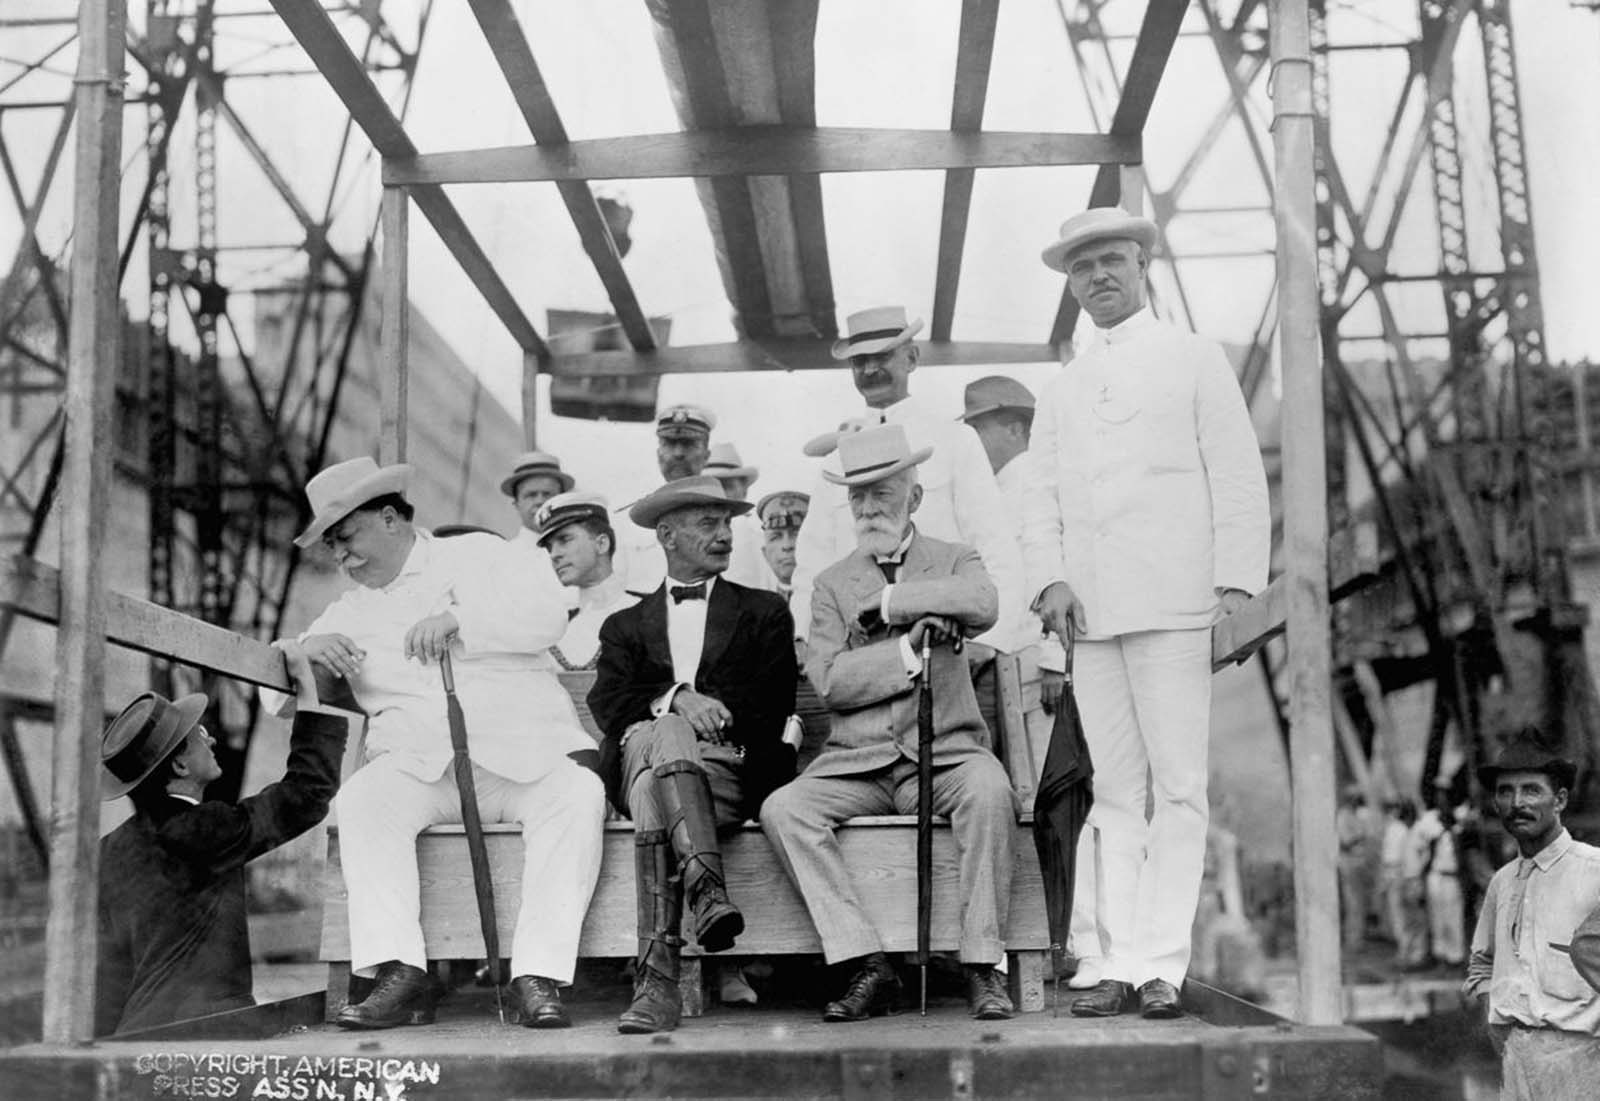 President William Howard Taft (left) visits the Gatun Locks with Supreme Court Justice Oliver Wendell Holmes (seated right) and Chief Engineer Colonel George Goethals (standing right). 1910.